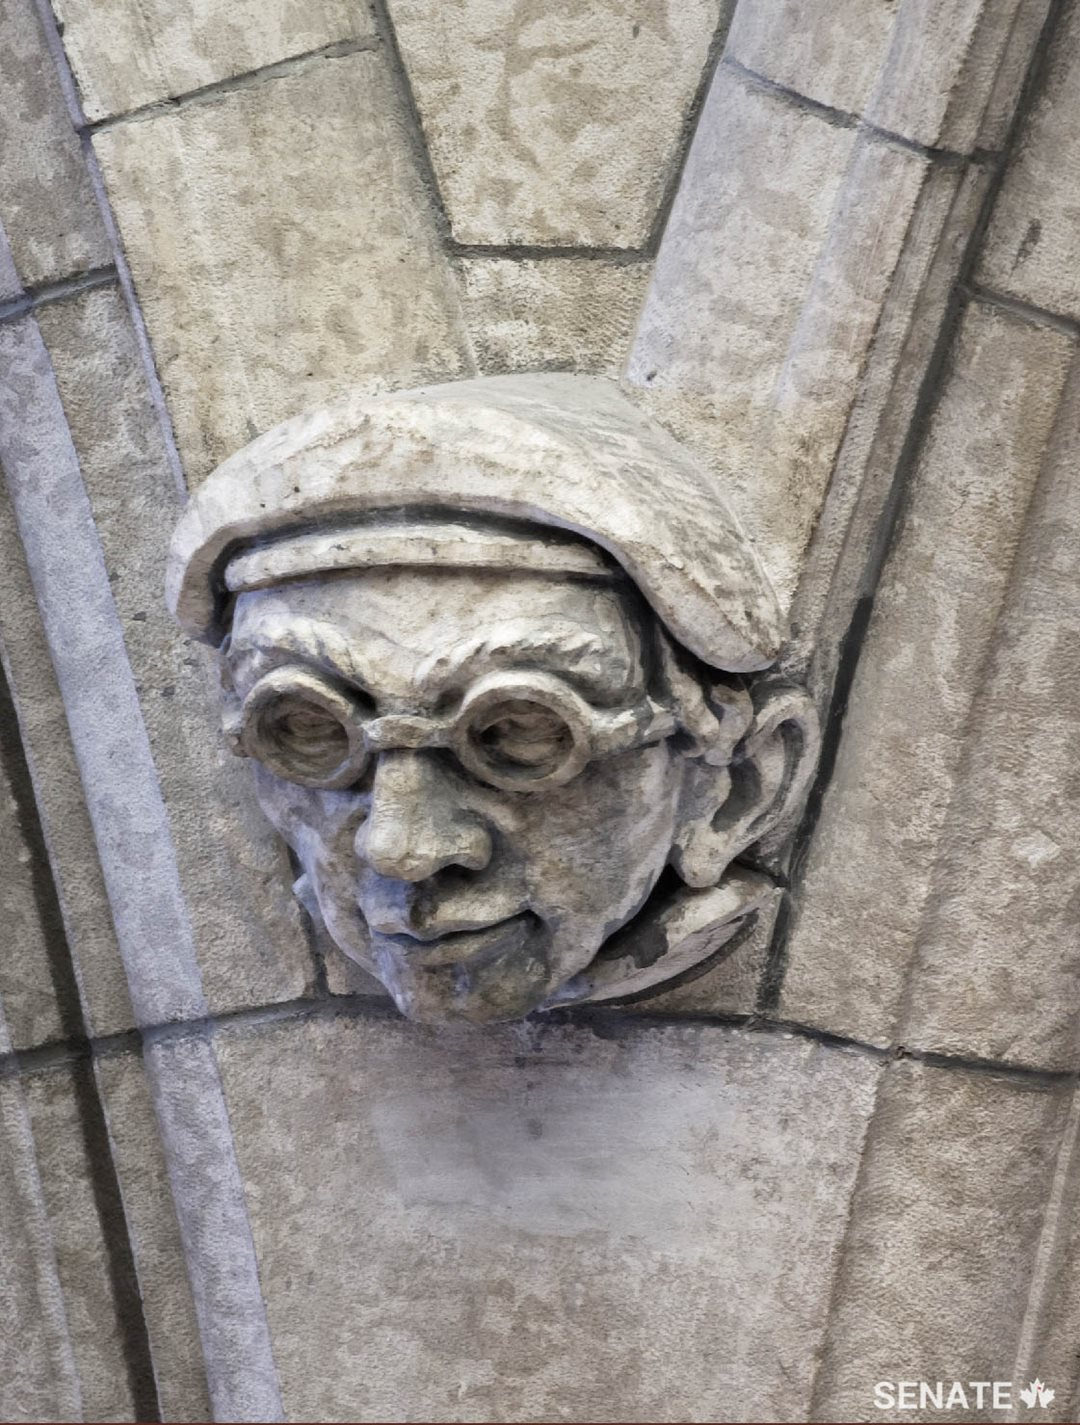 A self-portrait of one of the sculptors who worked on the Senate foyer in the 1950s stares down from high above.